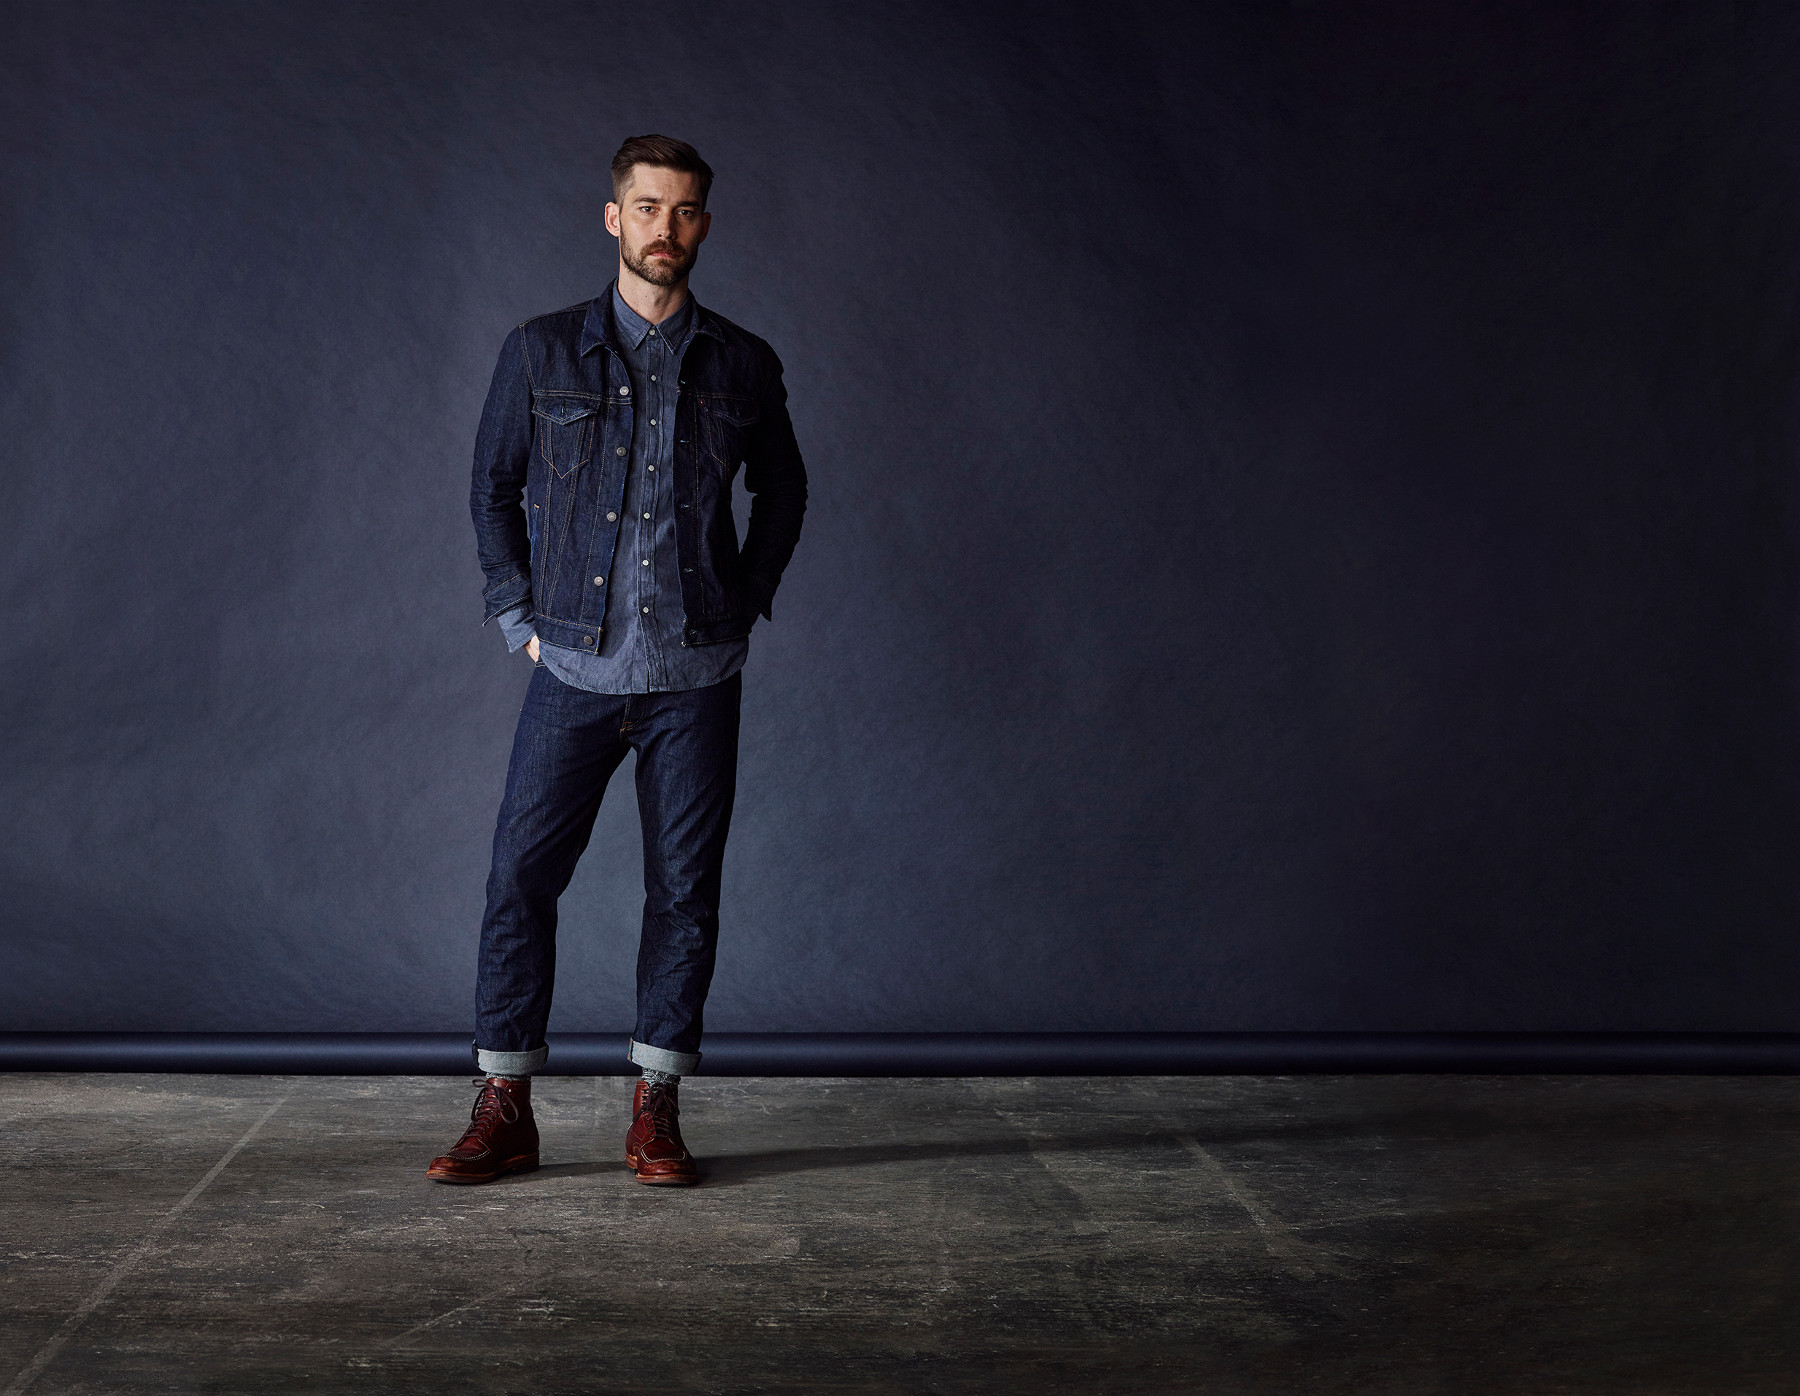 Levi's 501 Original Fit Guide Men's